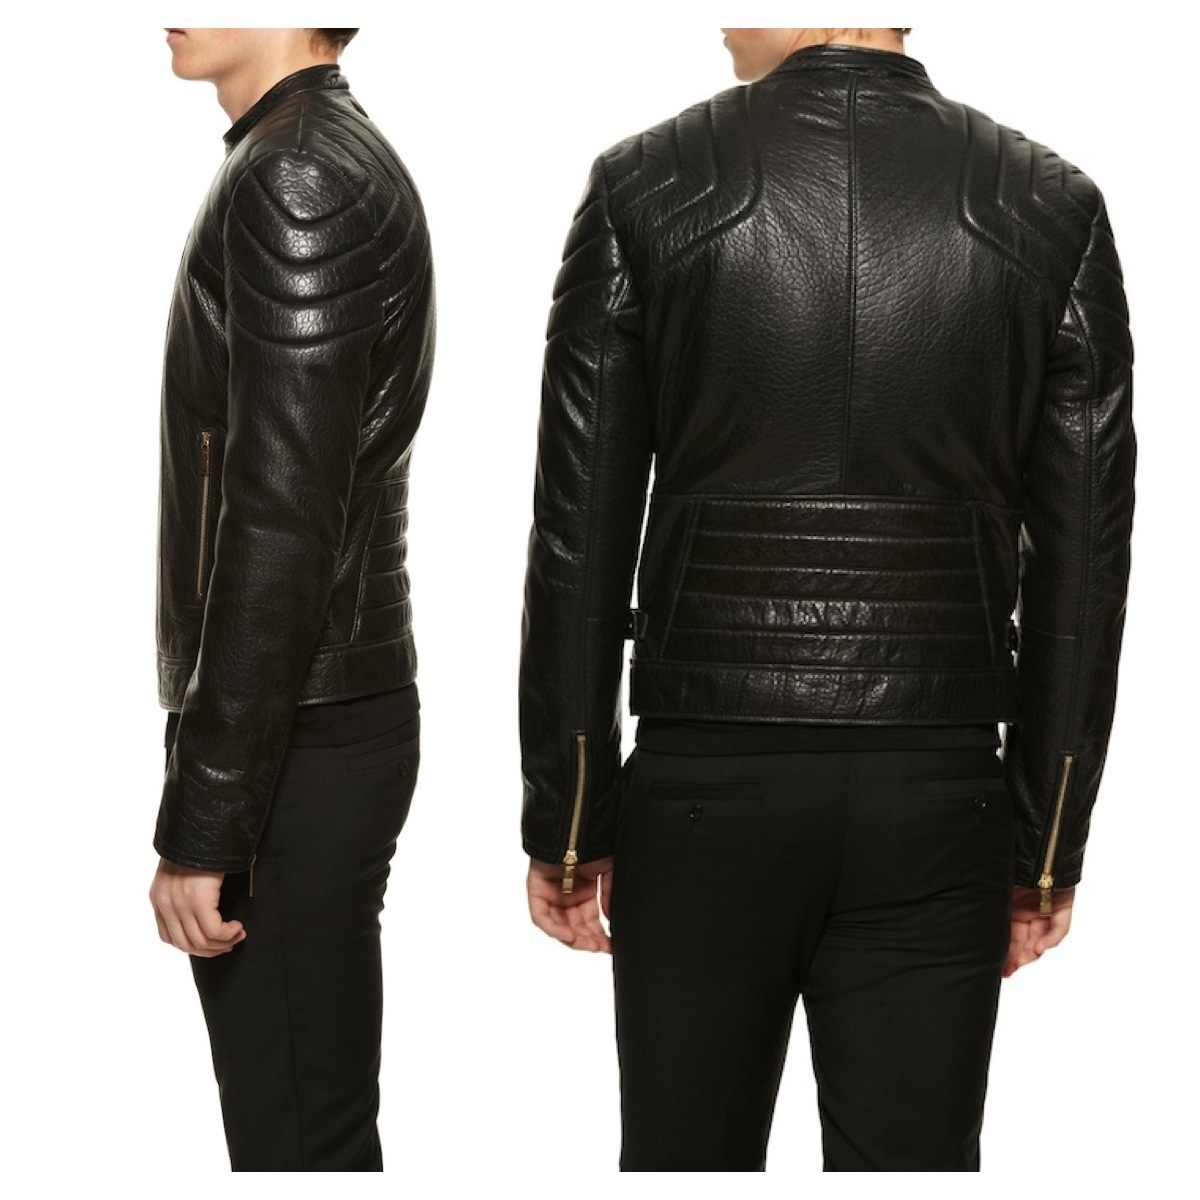 Must have Fall/Winter leather jacket by Vesace